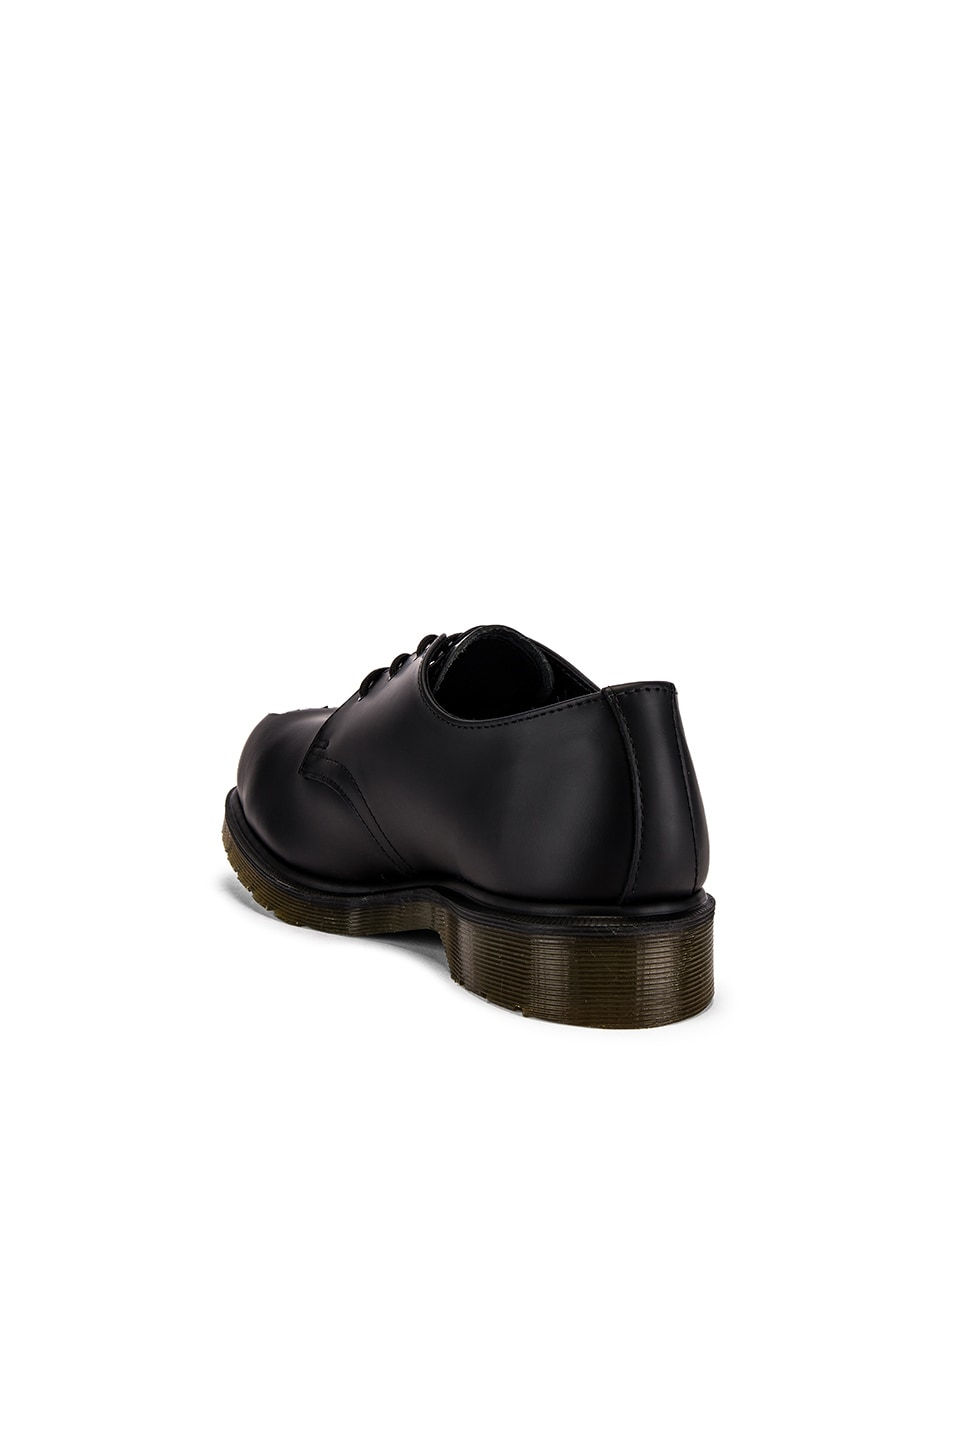 Image 3 of Raf Simons x Dr. Martens Cut Out Steel Toe Shoes in Black